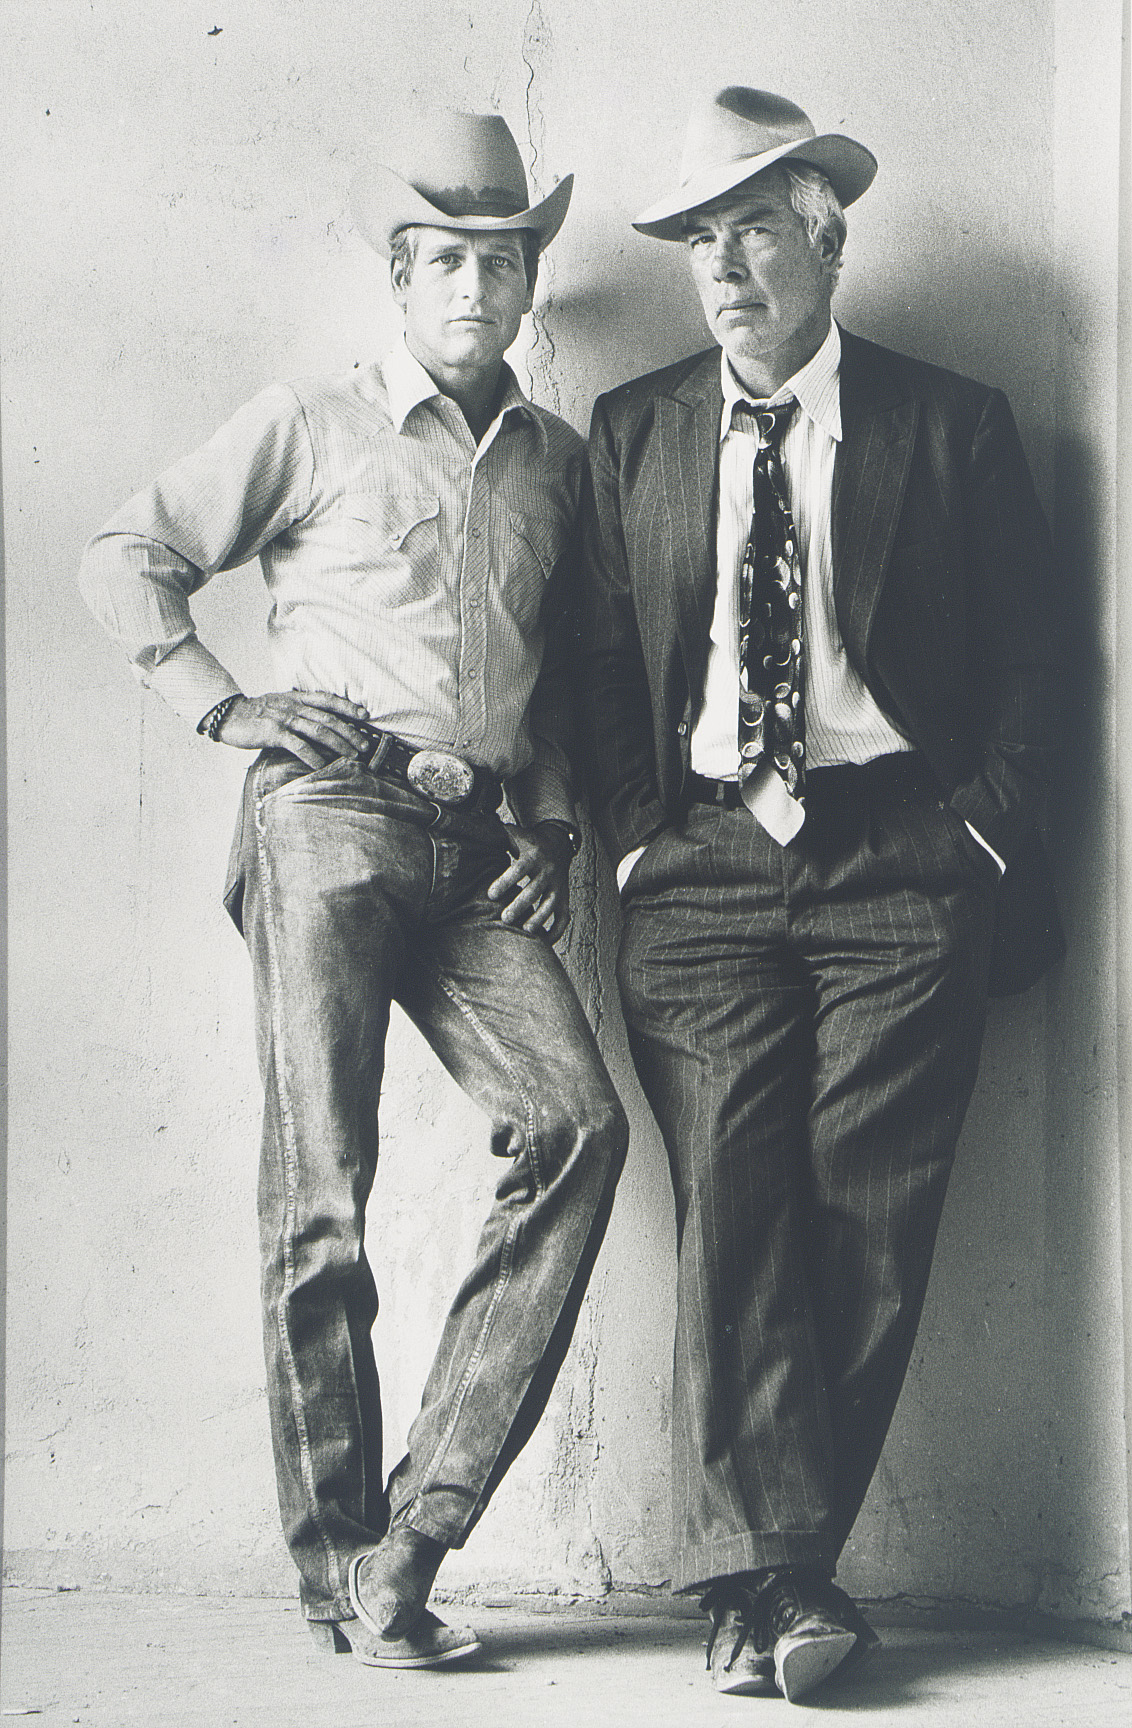 Paul Newman and Lee Marvin, 1972